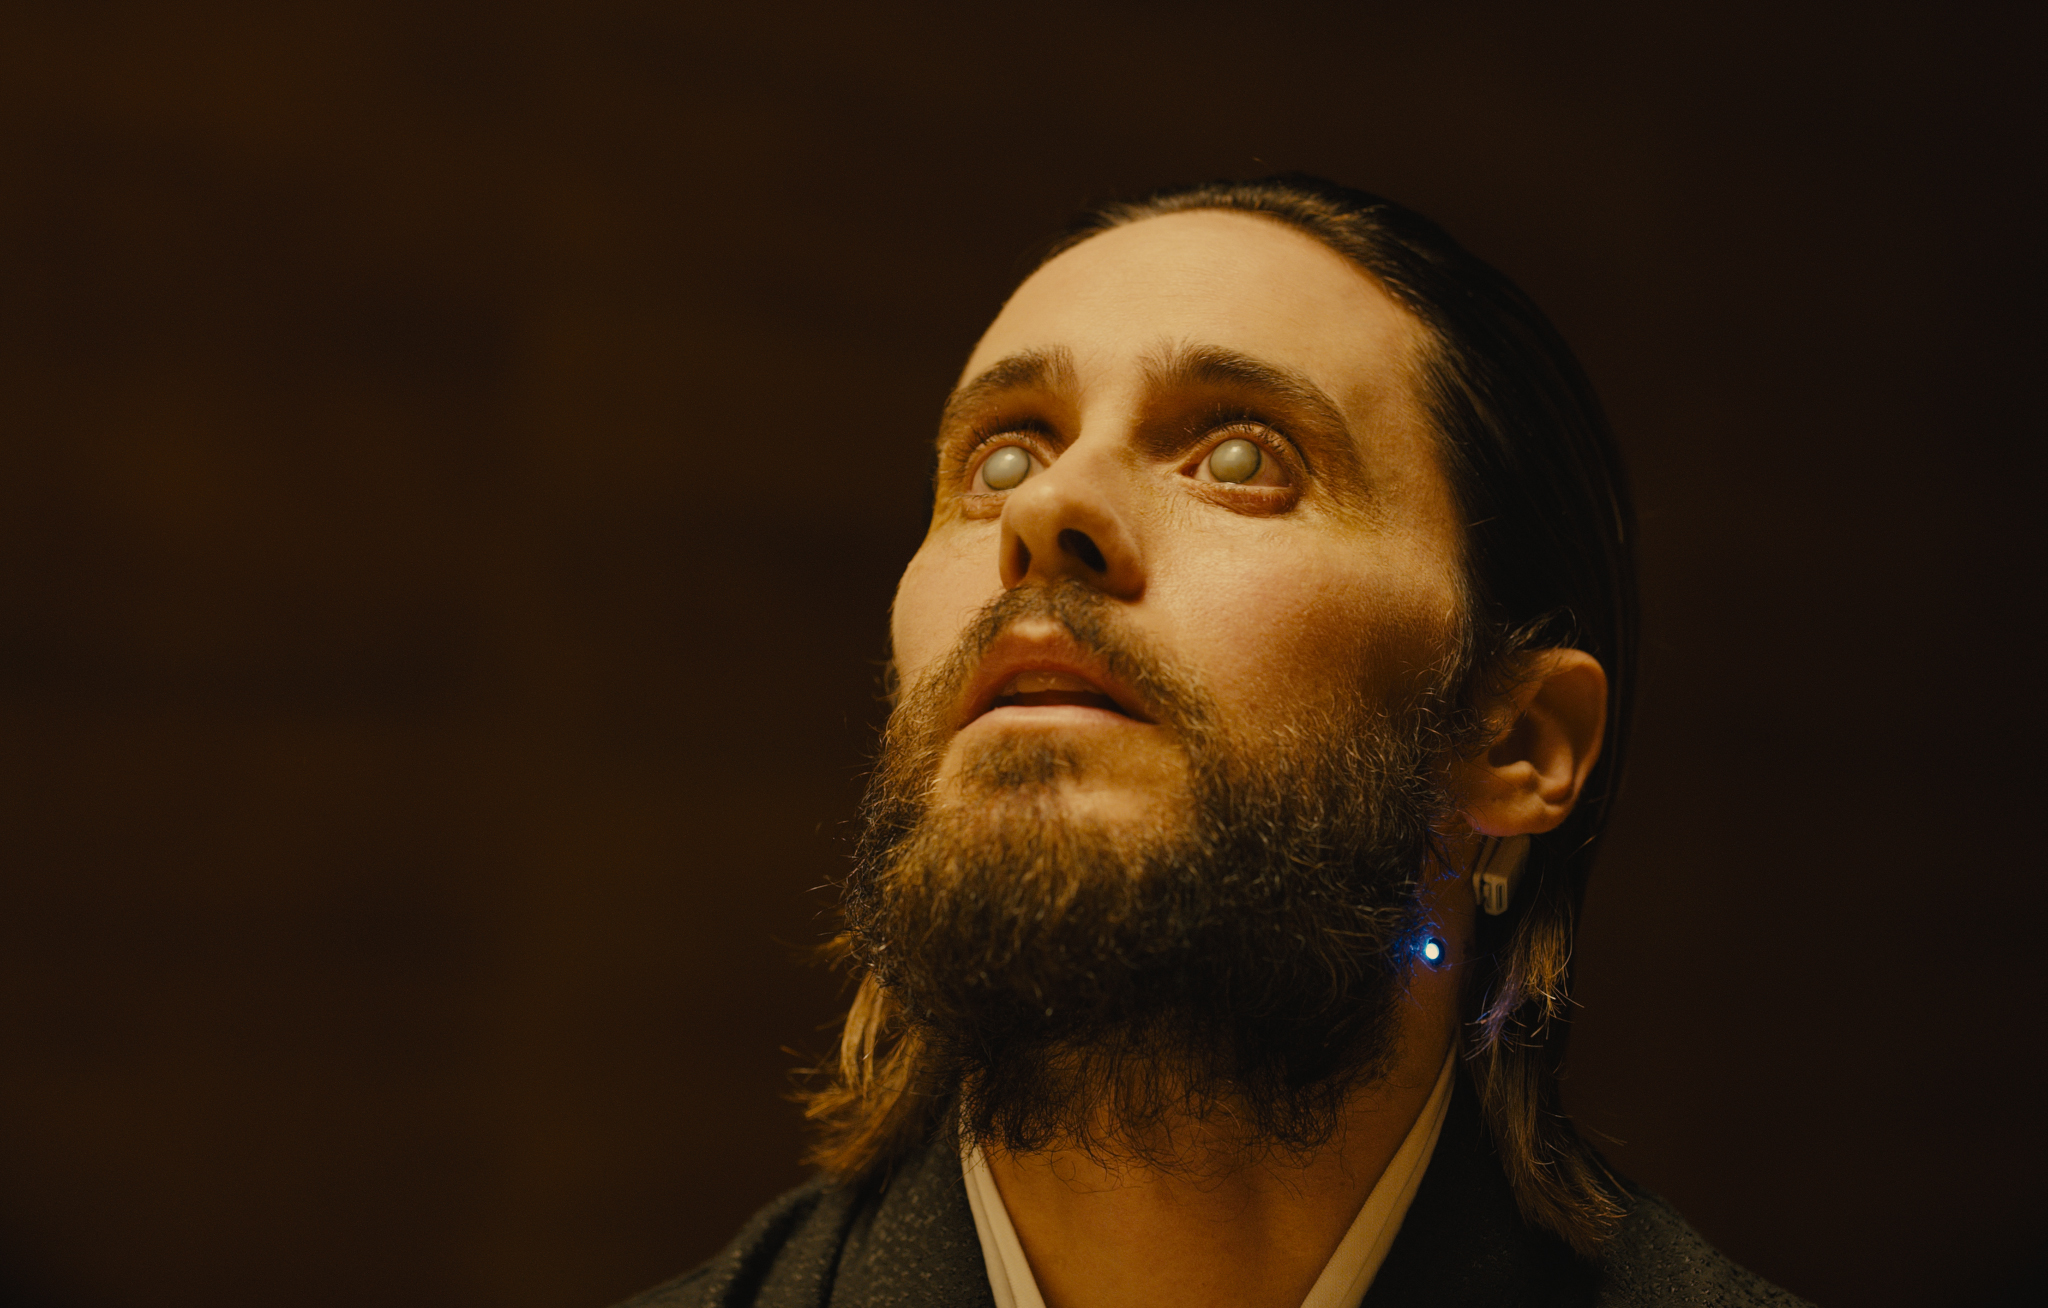 Jared Leto in Blade Runner 2049 in association with Columbia Pictures, domestic distribution by Warner Bros. Pictures and international distribution by Sony Pictures Releasing International.